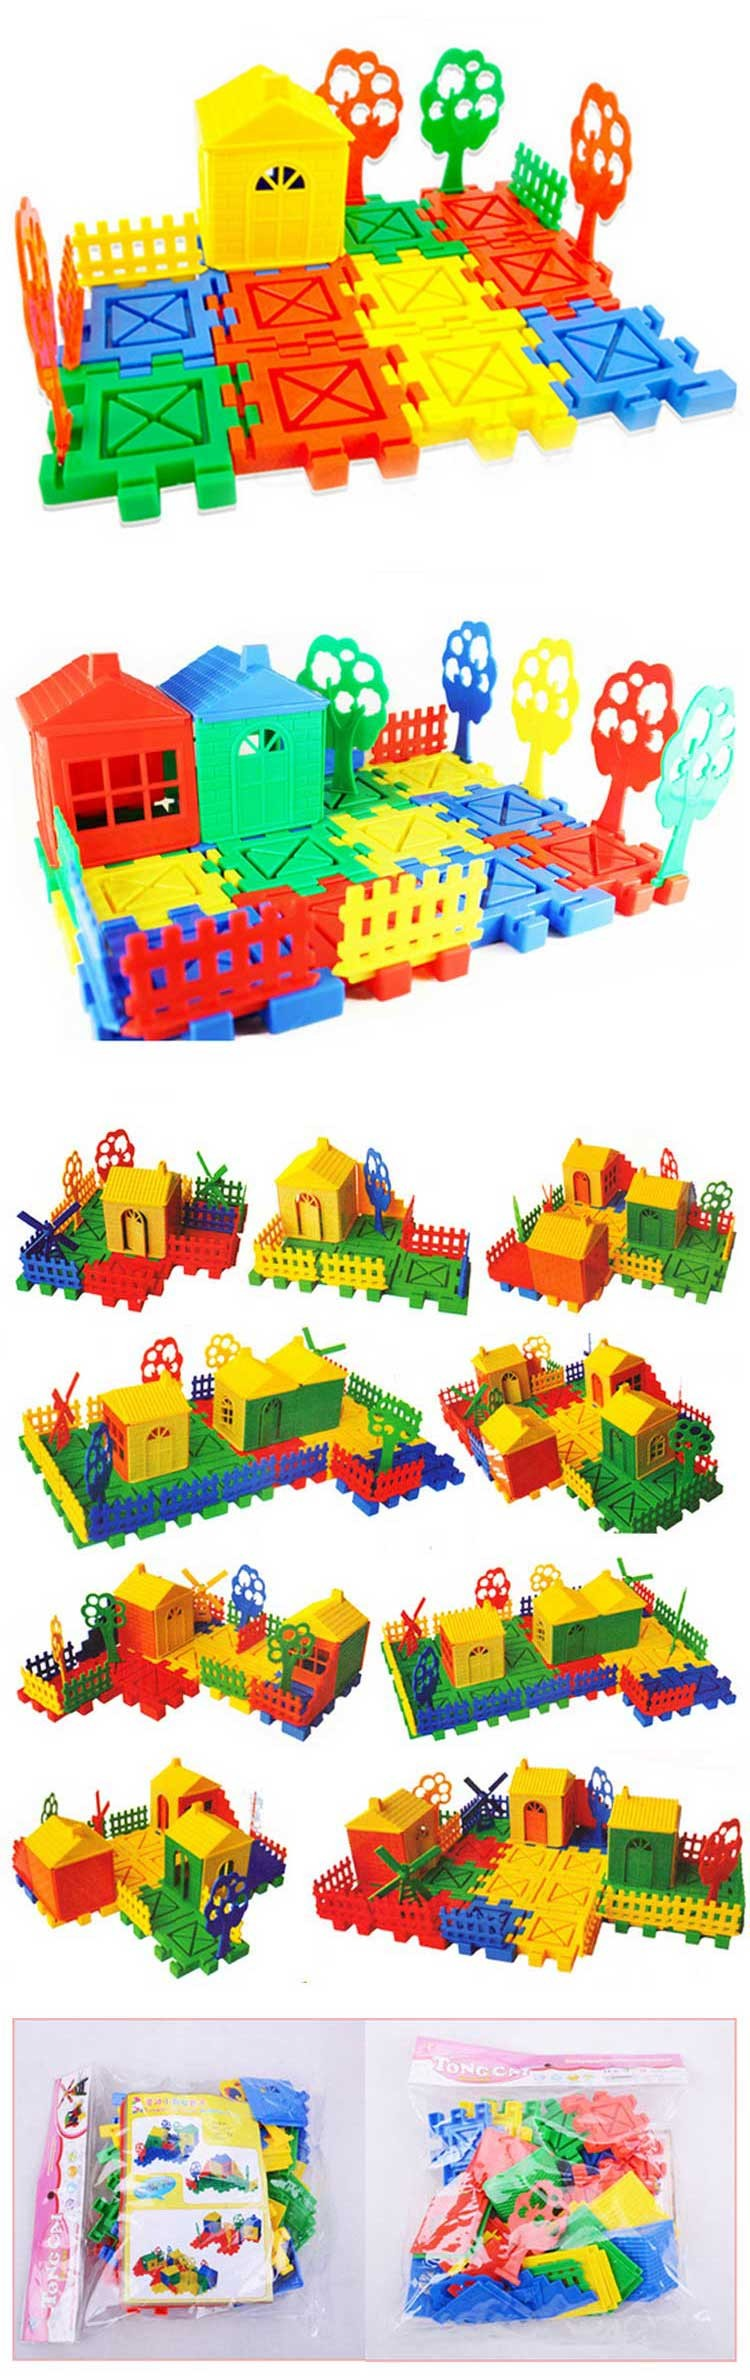 Colorful Assembling 3D Building Plastic Toys DIY Assembly Plastic House Building Kit Learn Toys for Kids Children Boys Girls Gif